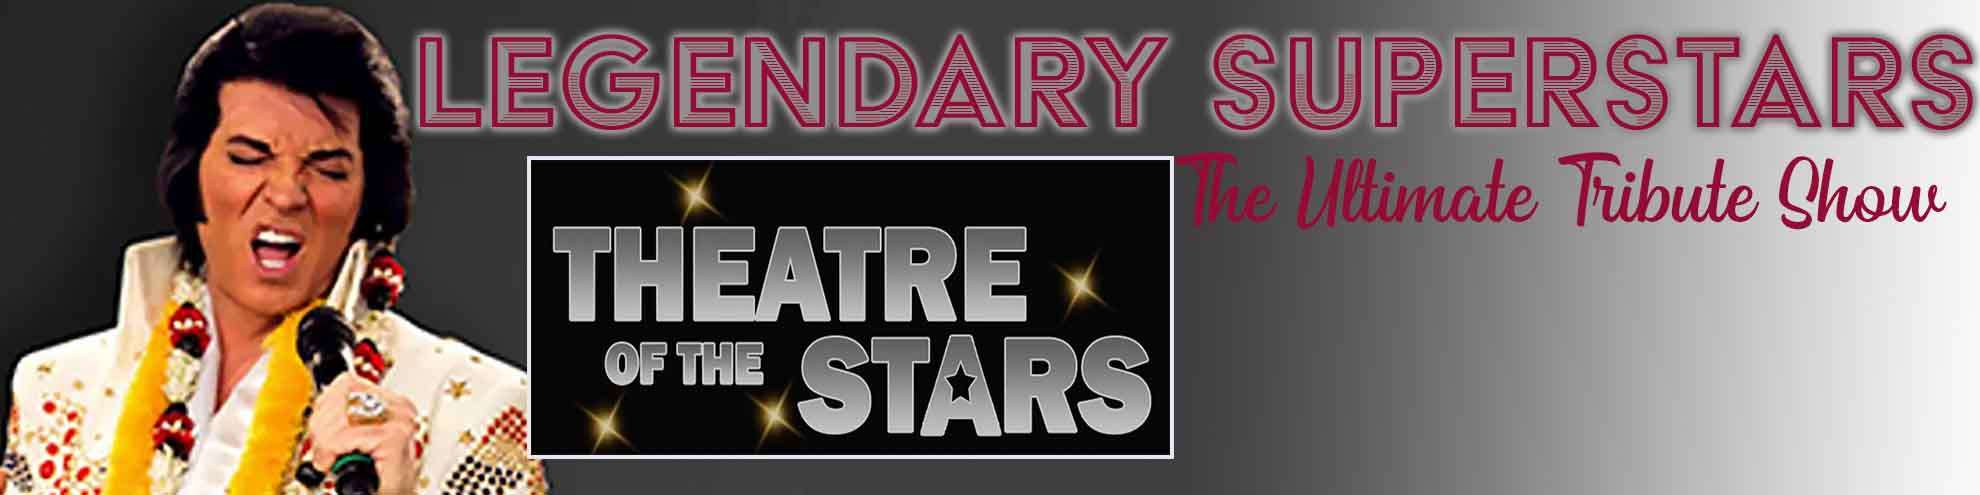 Legendary Superstars - The Ultimate Tribute Show Discount Tickets